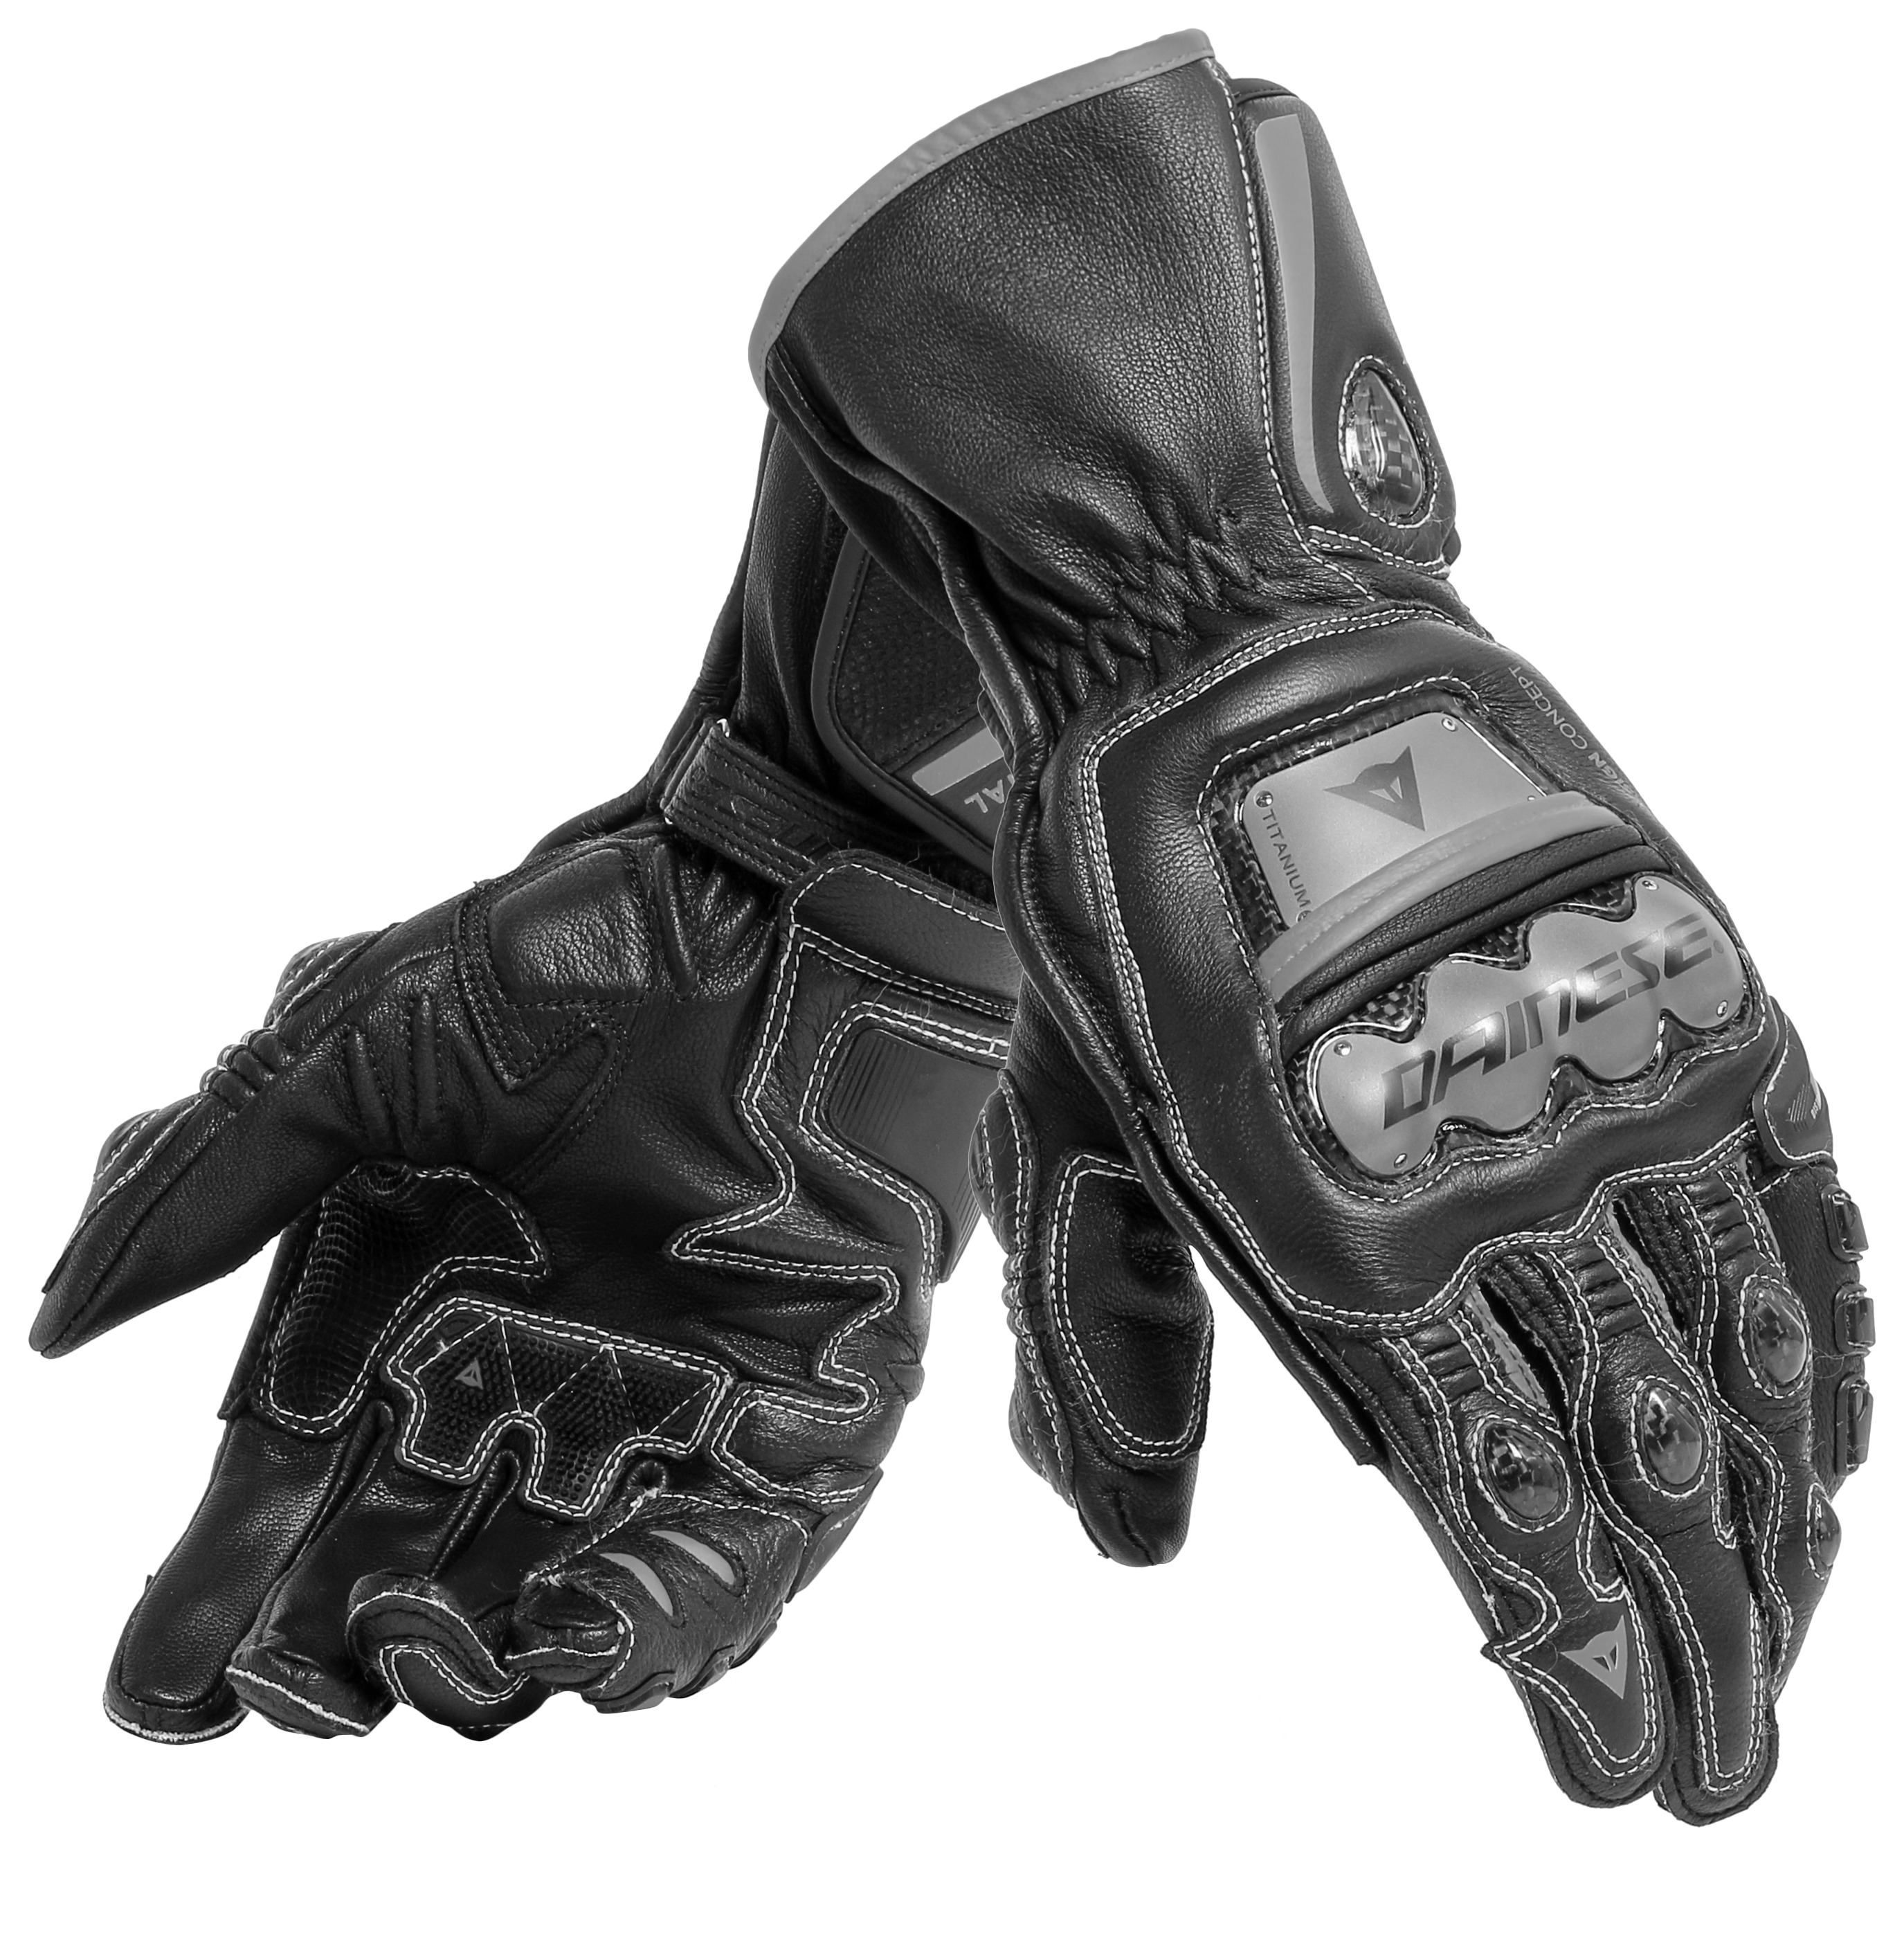 Dainese Full Metal 6 Gloves Cycle Gear